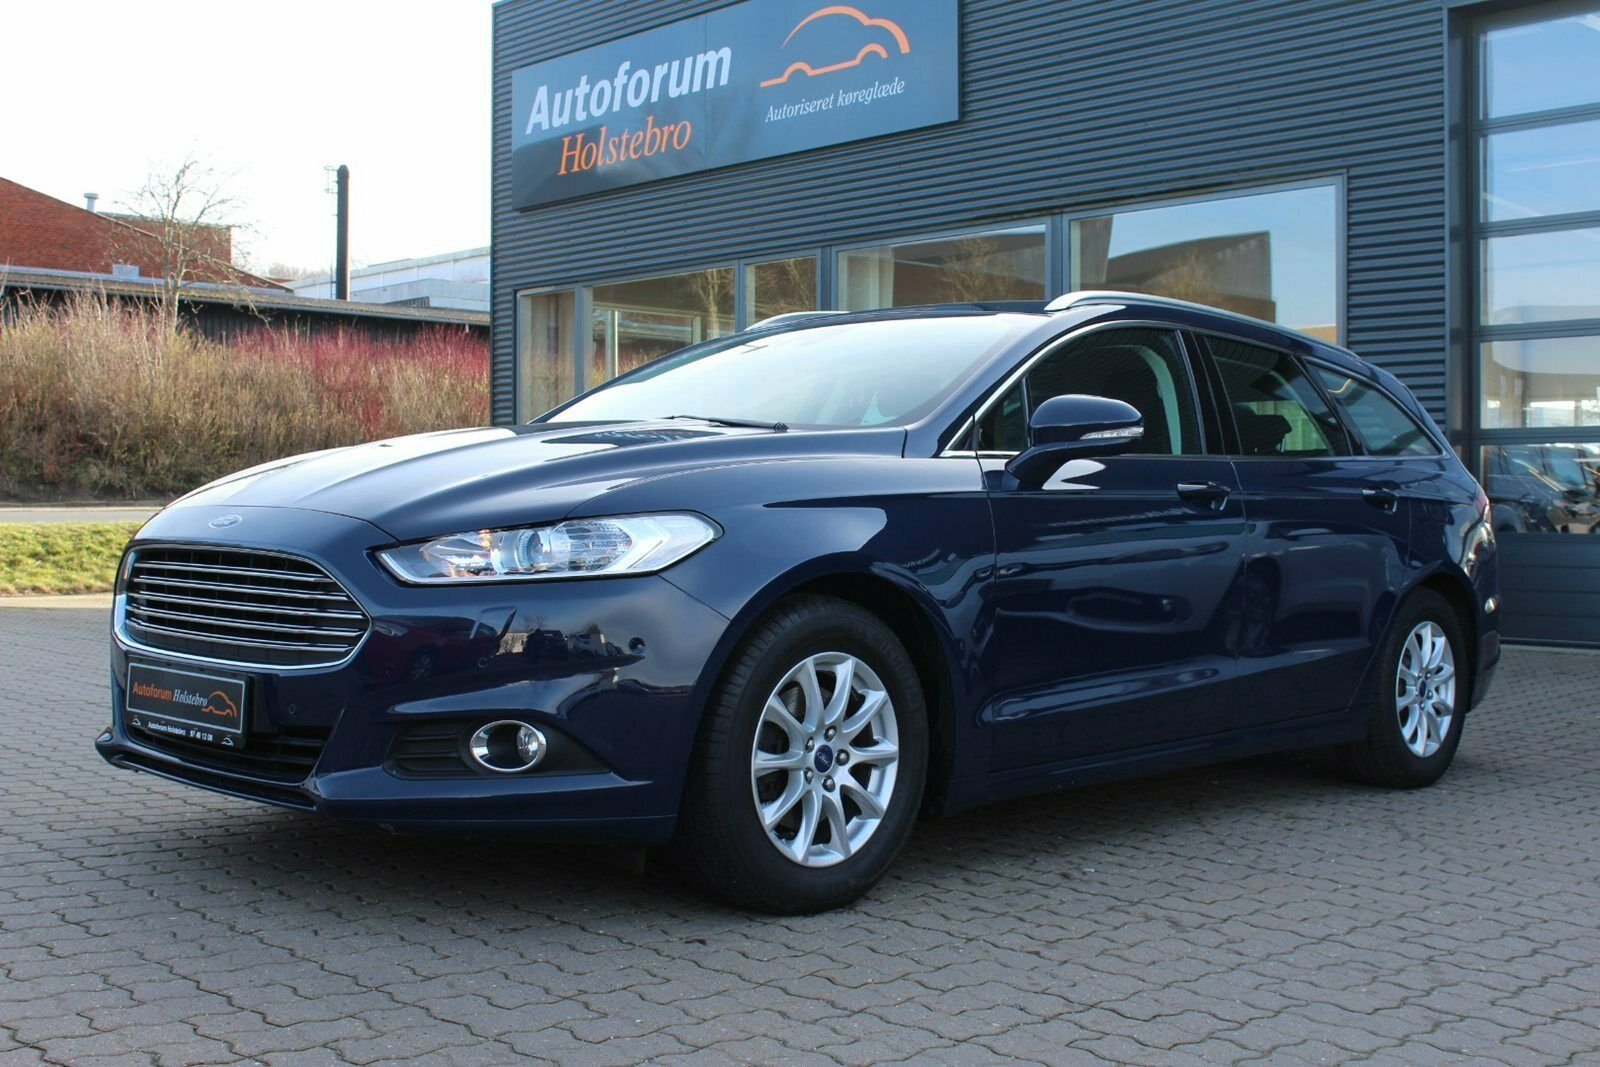 Ford Mondeo 2,0 TDCi 150 Trend stc. ECO 5d - 204.800 kr.